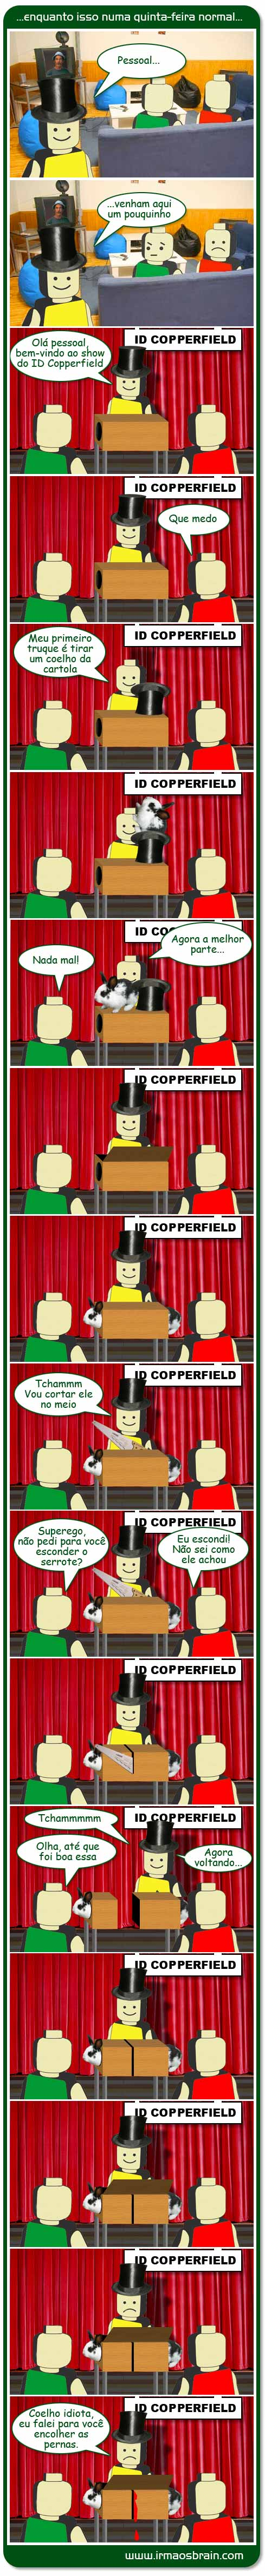 Irmaos Brain Copperfield